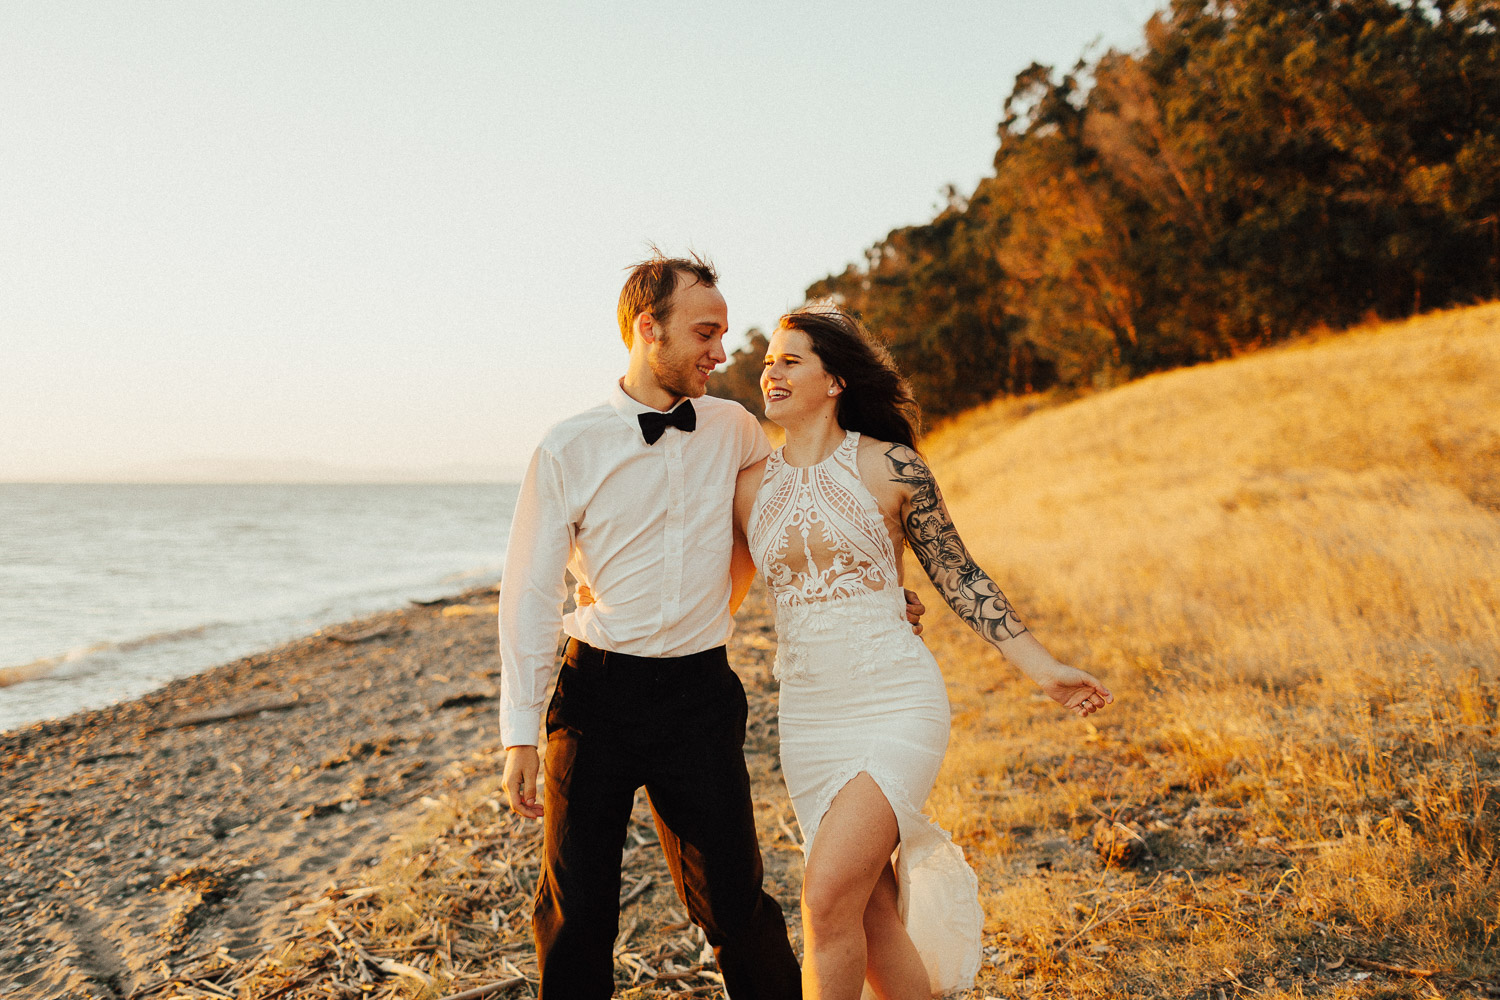 Image of groom and bride walk together on the beach